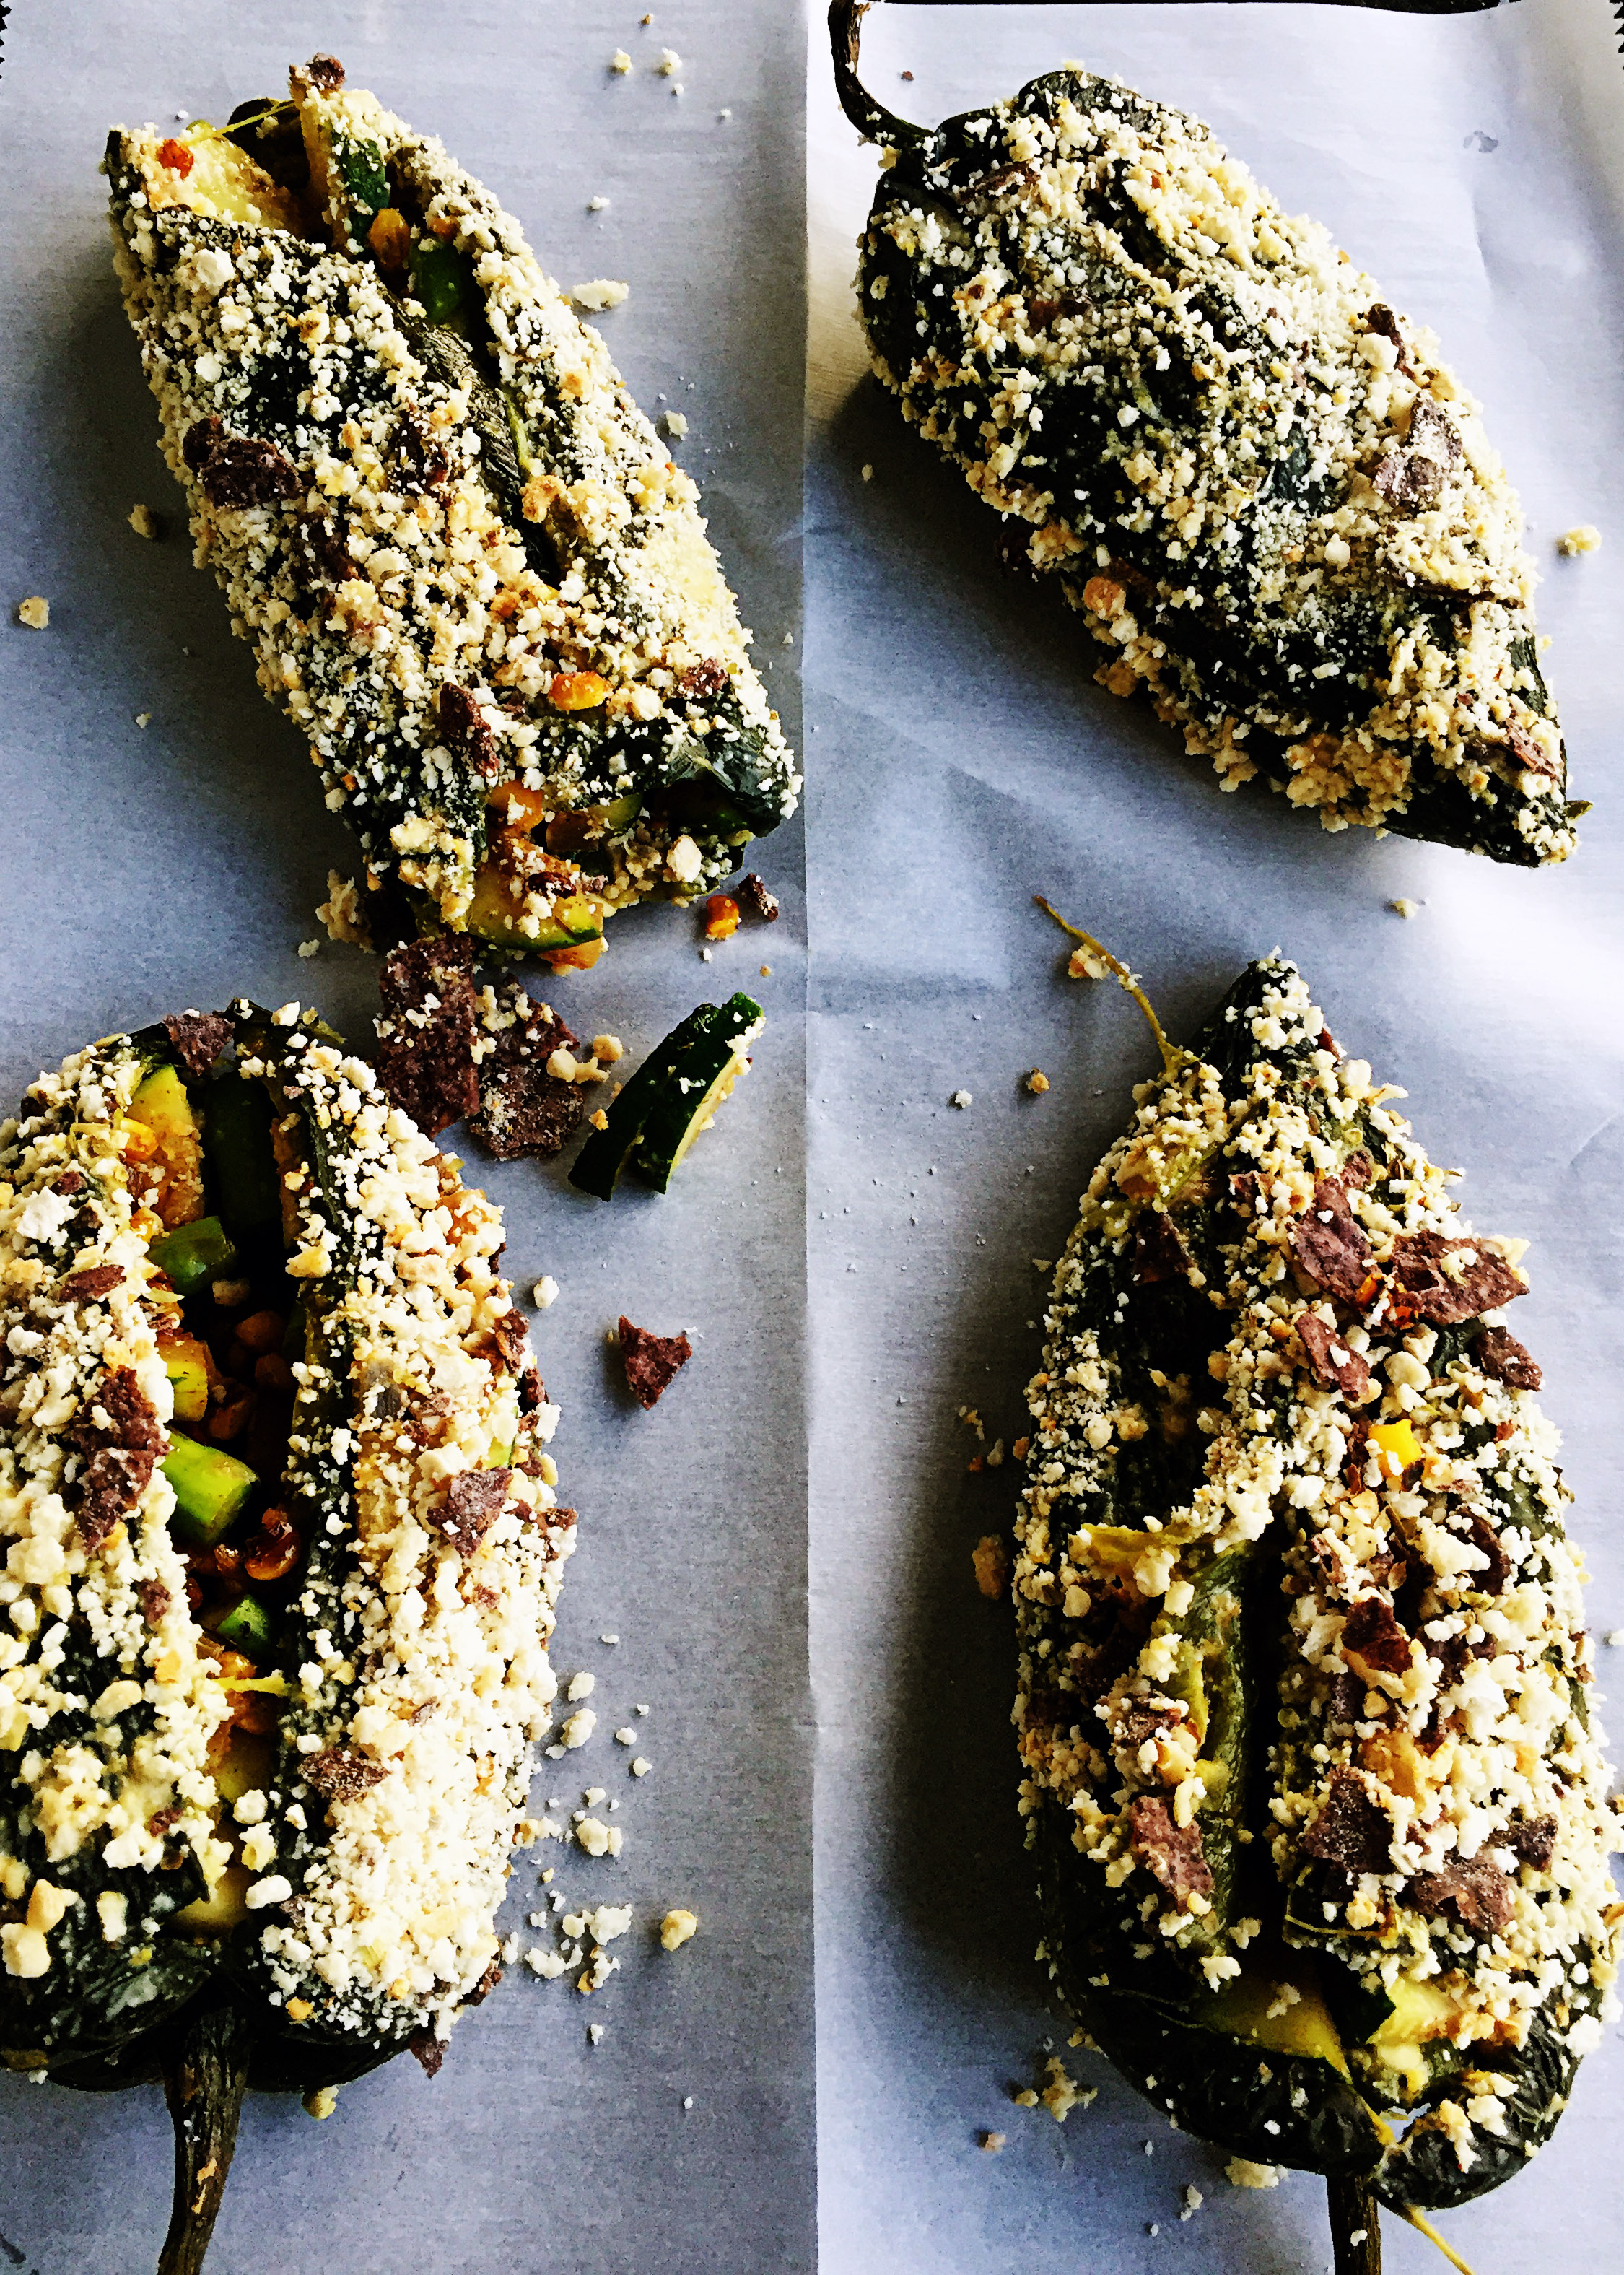 10. Last step - place each poblano in the bath and rotate to coat it well. Then coat it with the breadcrumb + spice mixture. Place in the oven at 350F and cook for 5-6 minutes to warm and cook the breadcrumbs on.